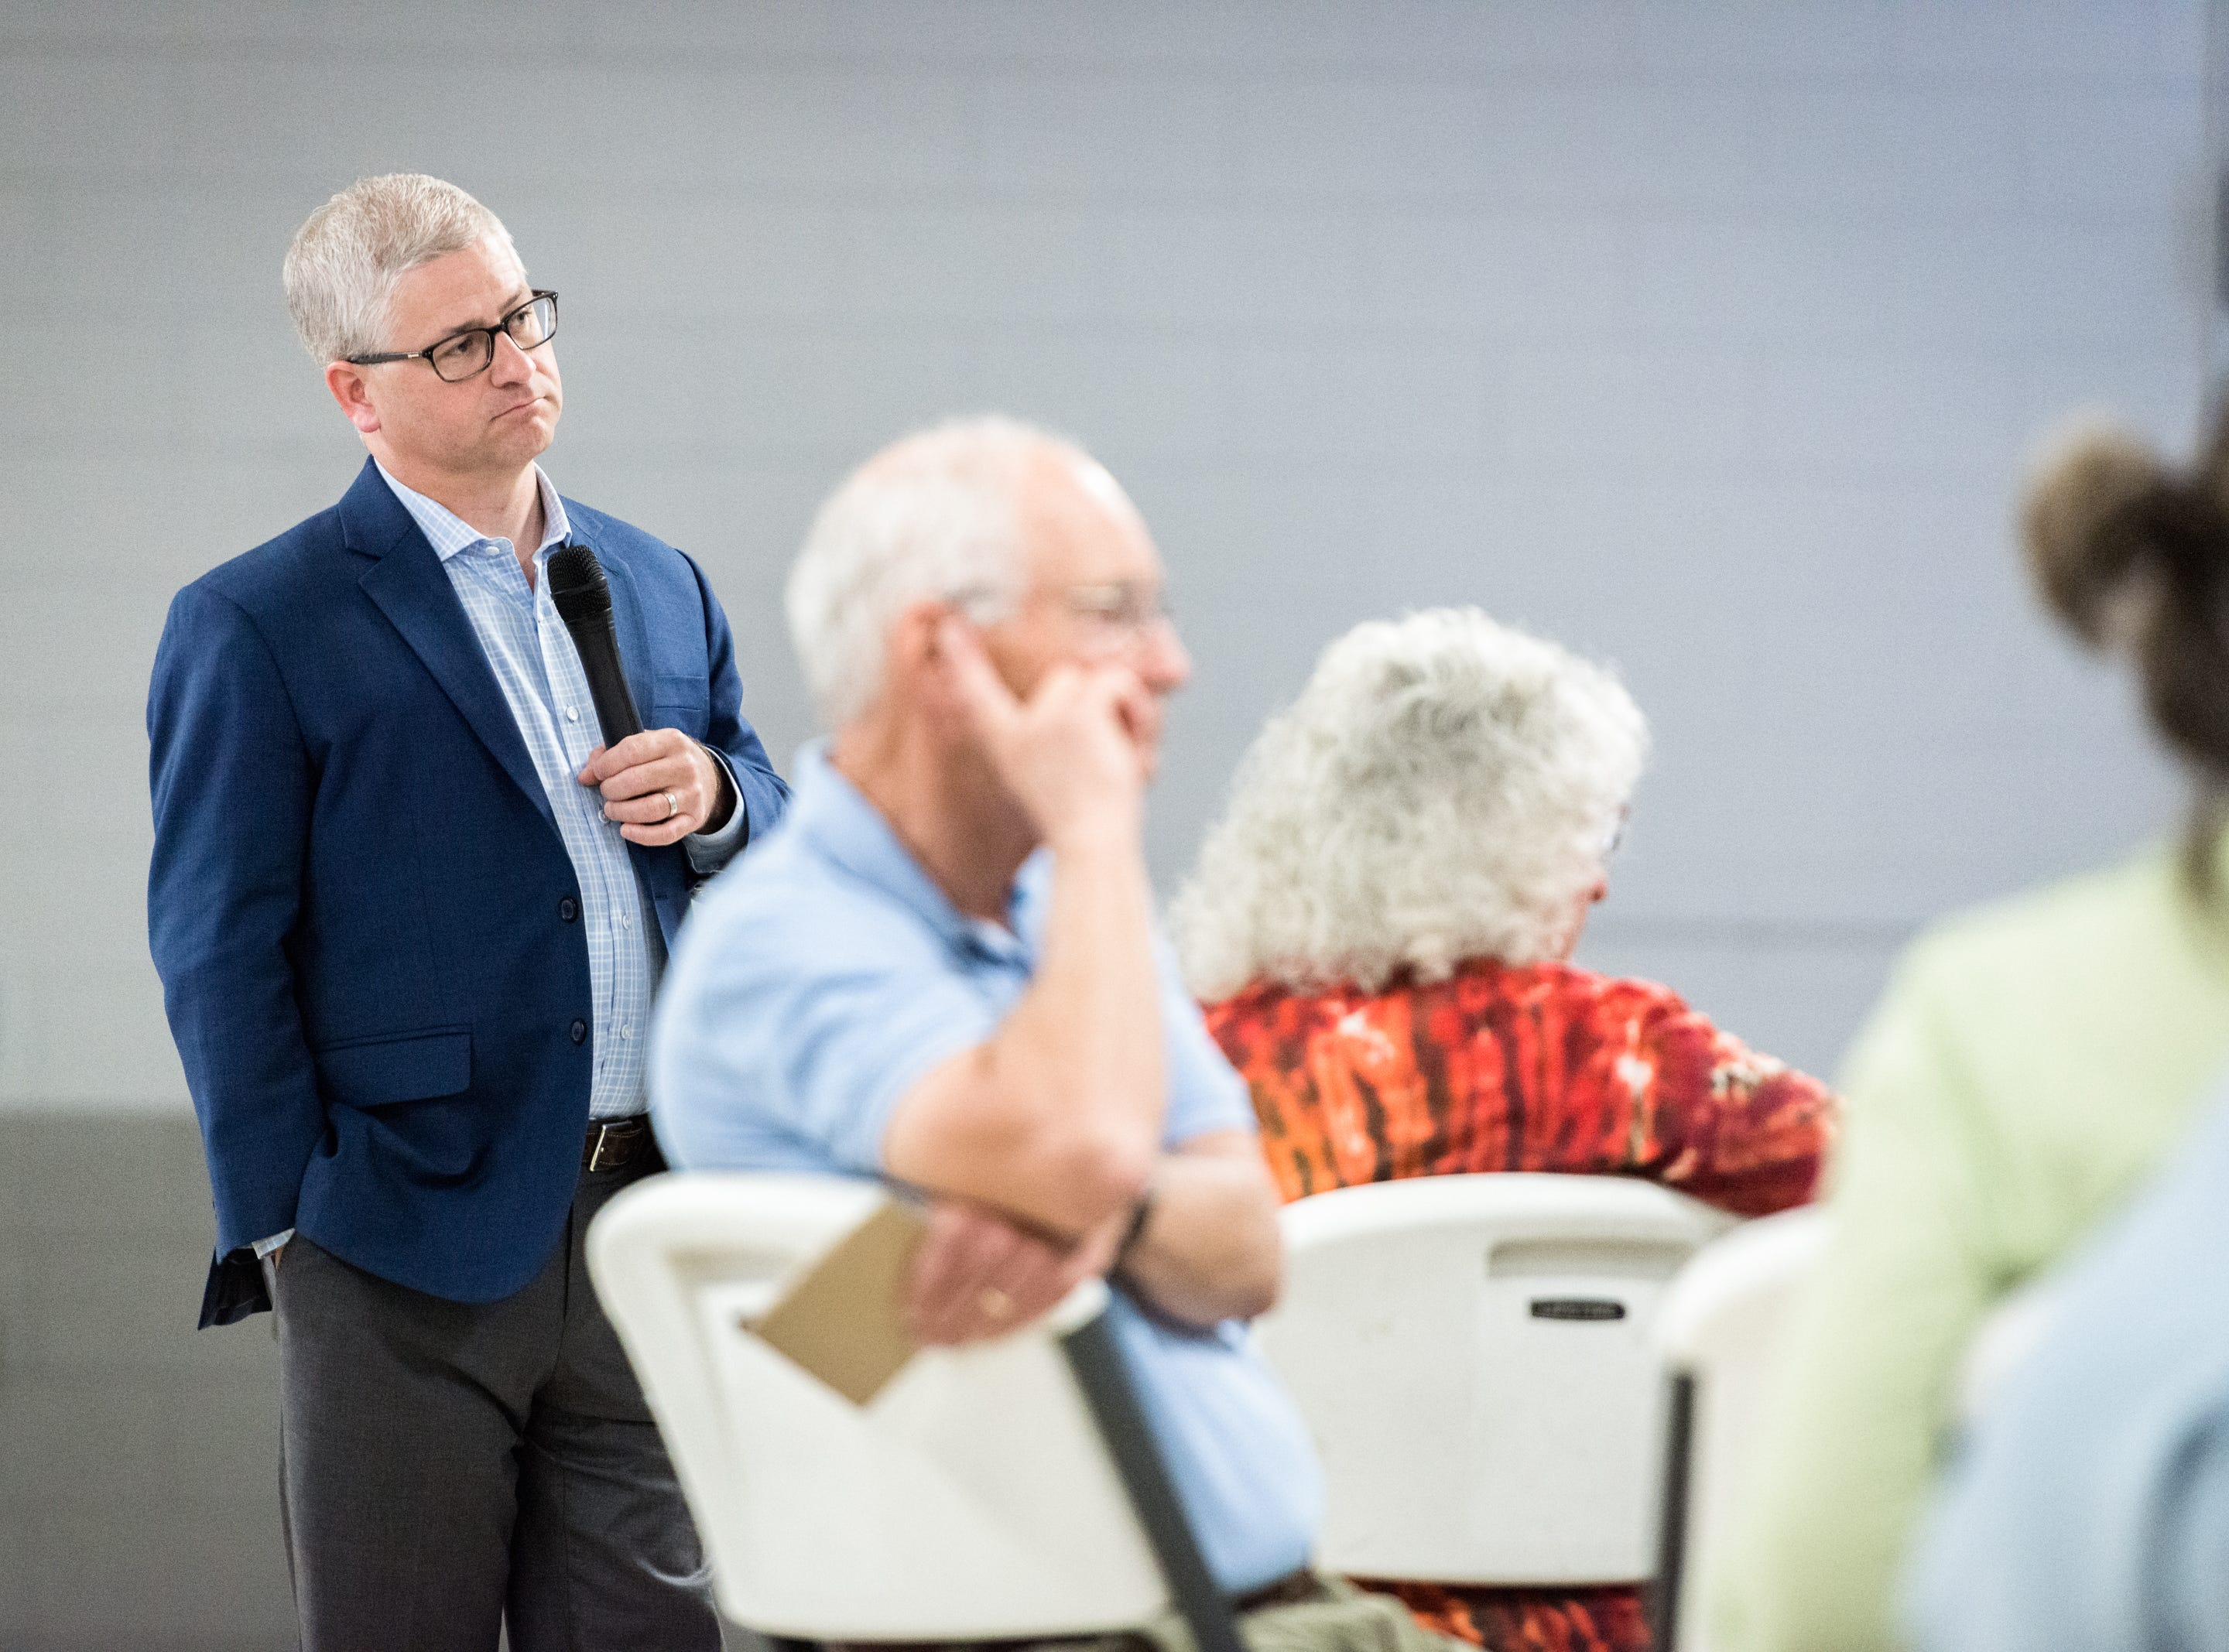 Patrick McHenry, the U.S representative for North Carolina's 10th congressional district, listens to questions during the town hall meeting at the Riceville Volunteer Fire Department Wednesday, August 1, 2018.